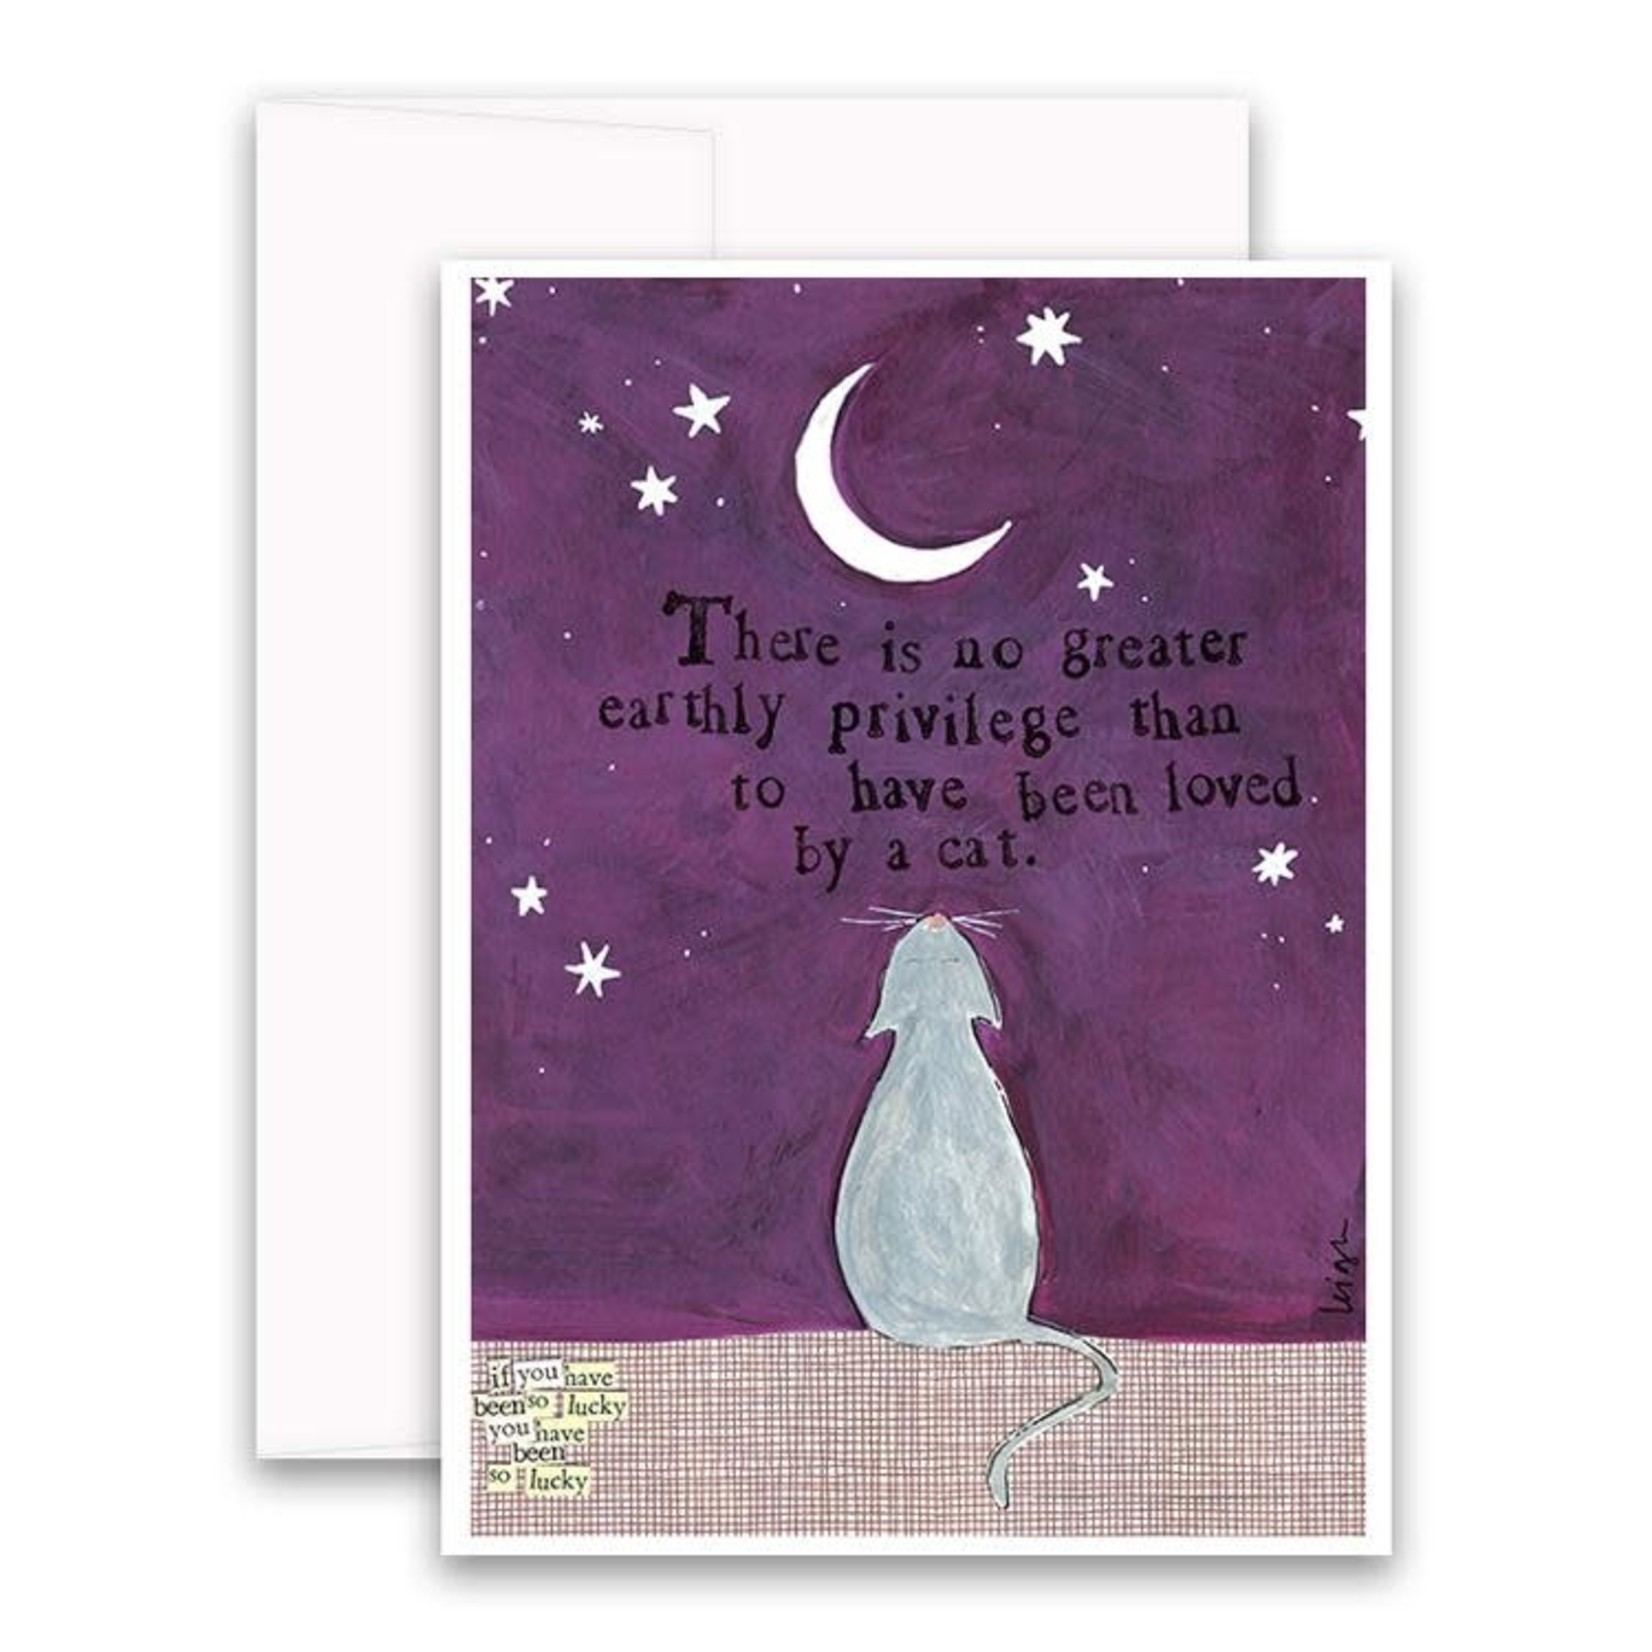 Curly Girl Design Loved by a Cat card